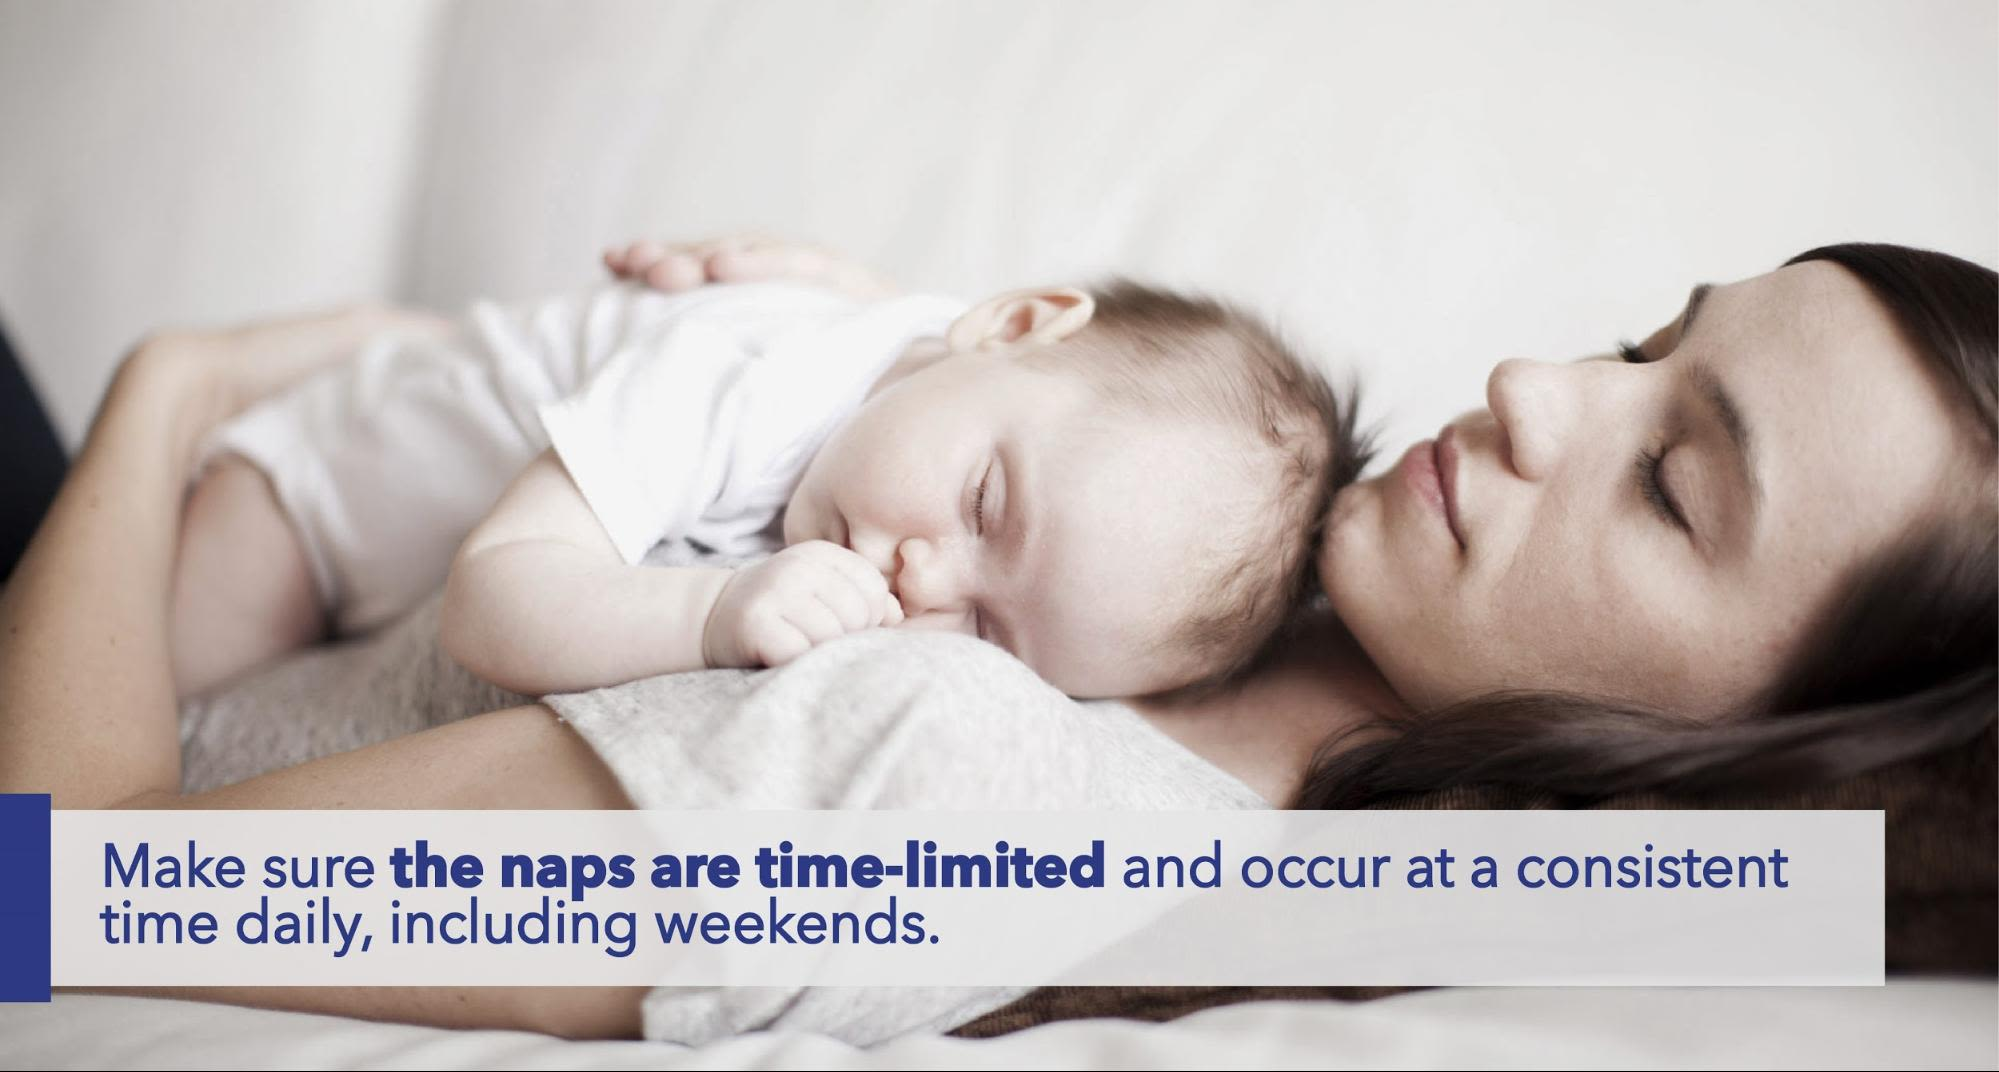 Make sure the naps are time-limited and occur at a consistent time daily, including weekends.